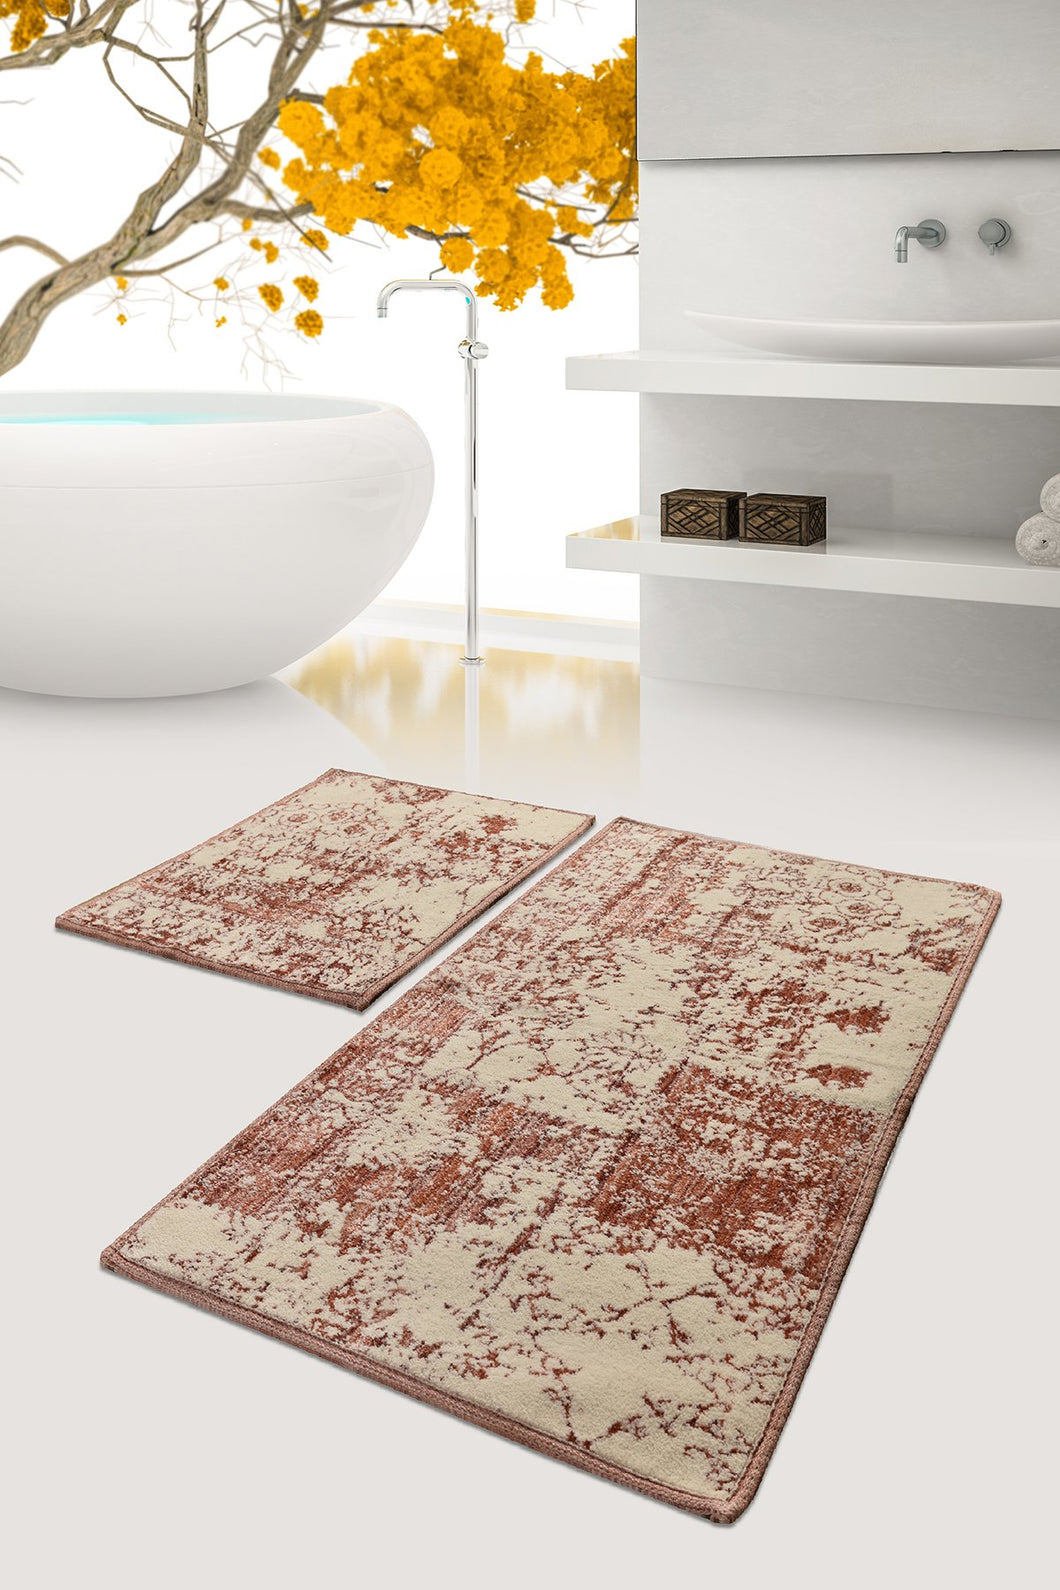 Antdecor Cinnamon Color and Brown Modern and Decorative Bathroom Rug